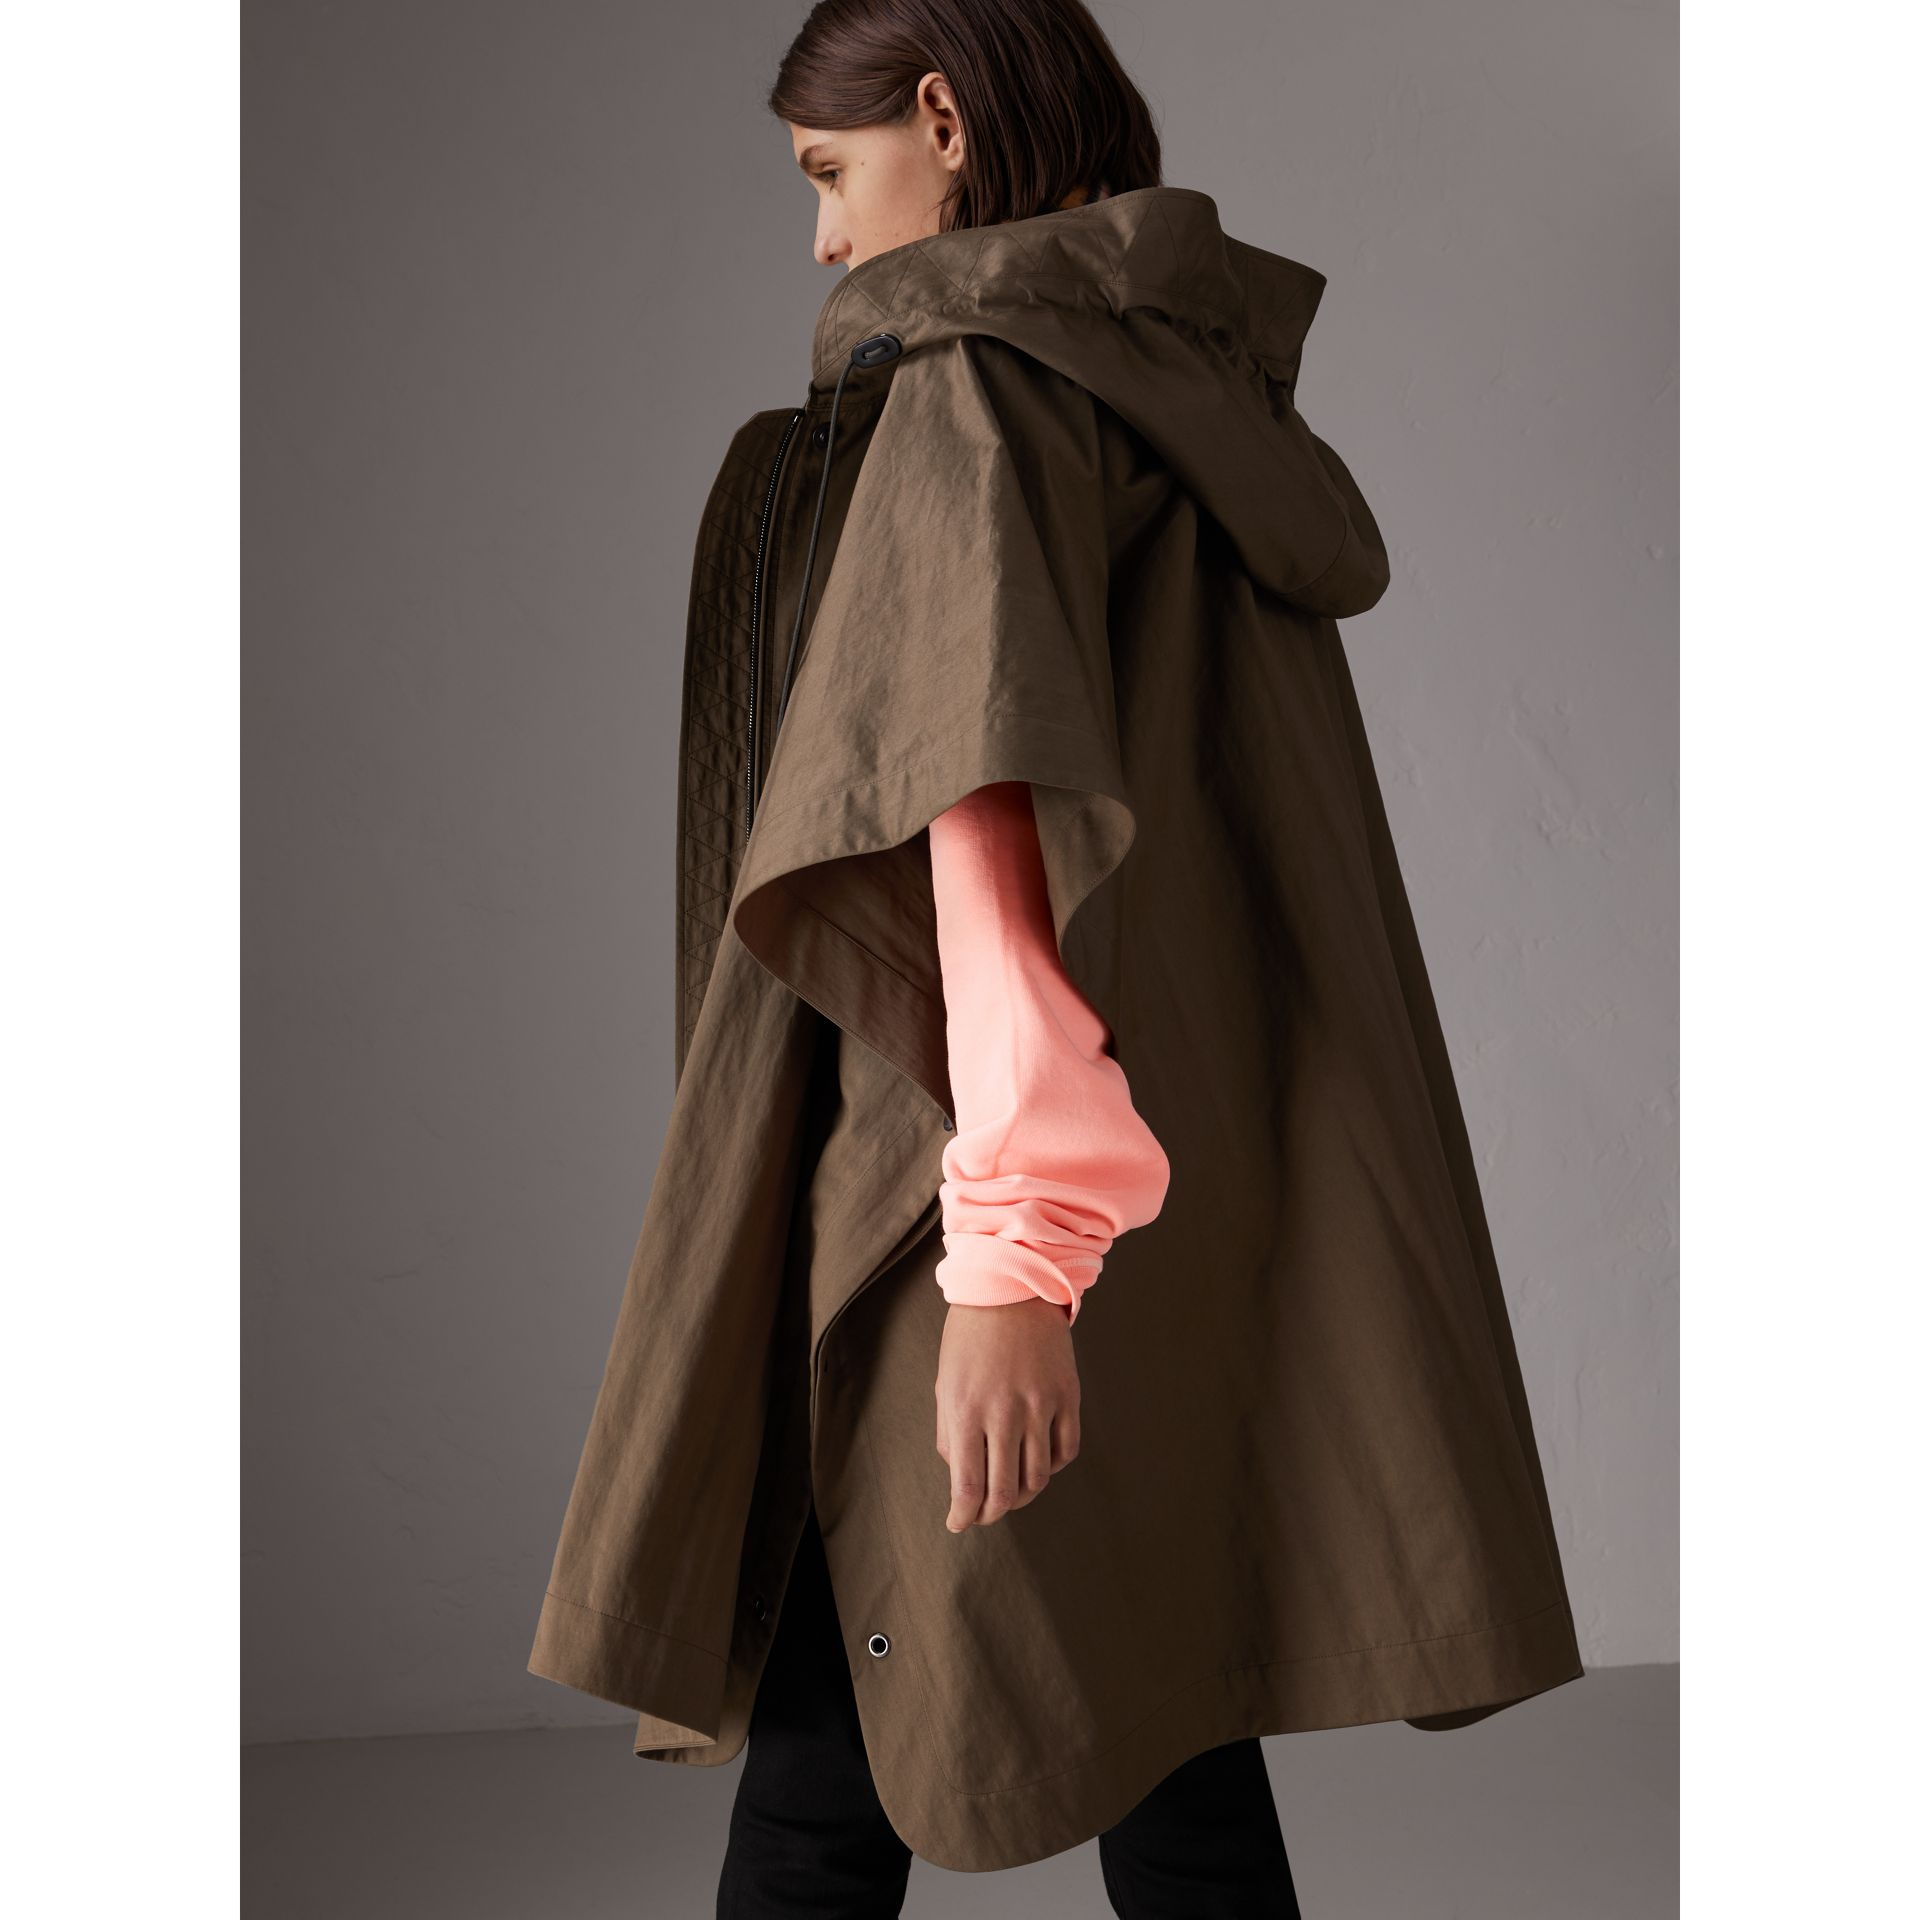 Showerproof Oversized Parka Cape in Dark Olive - Women | Burberry - gallery image 2